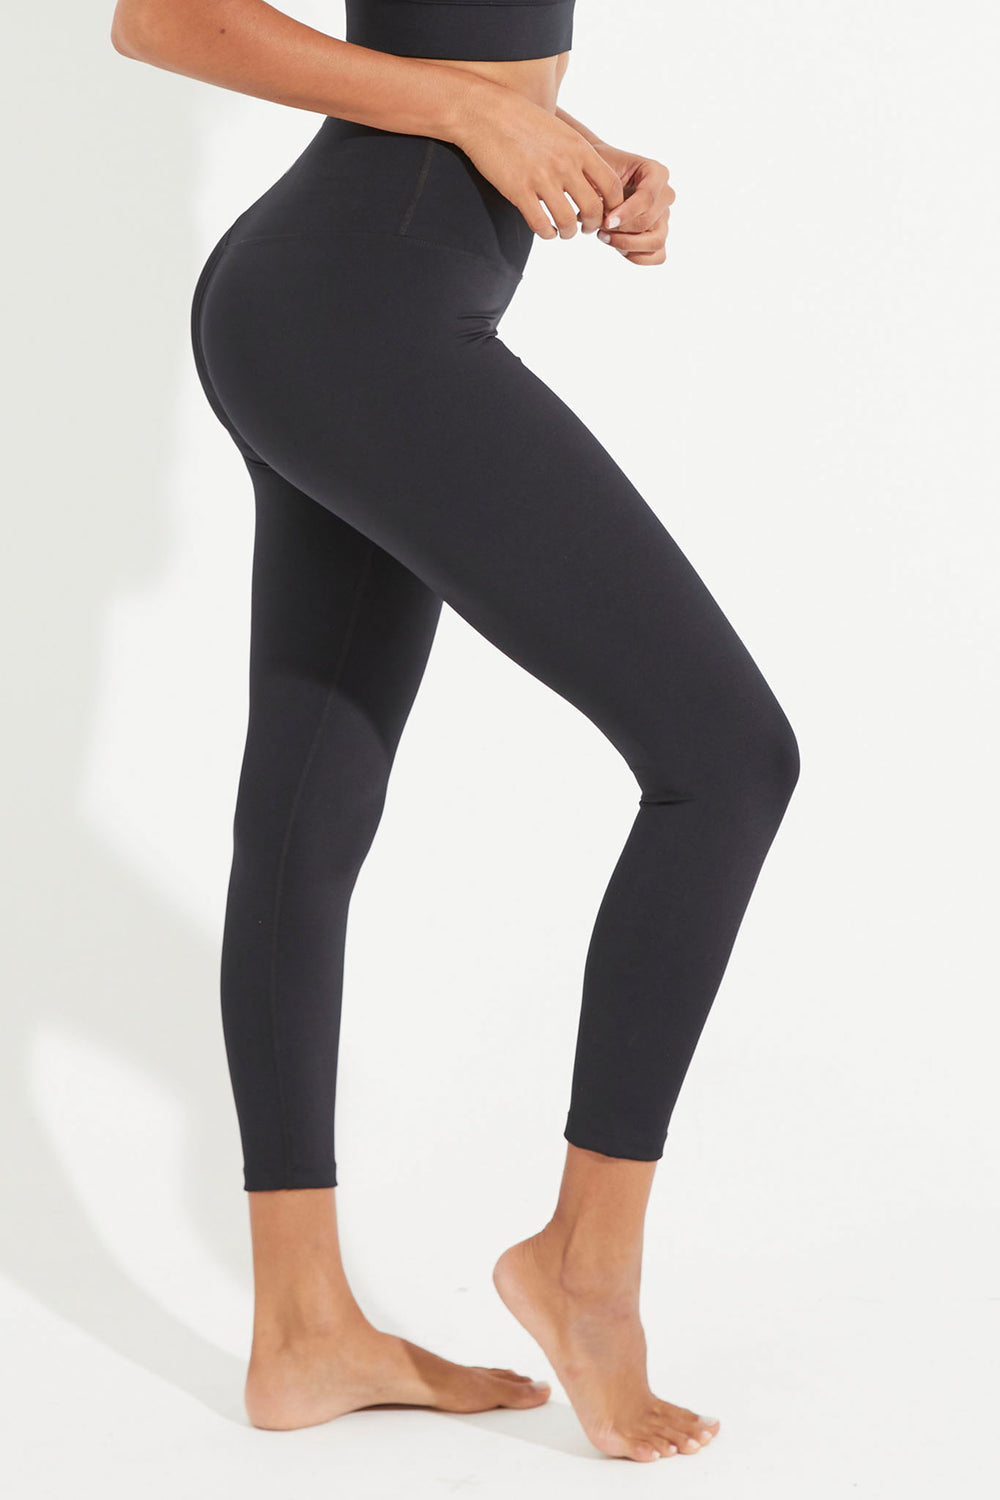 Balance Legging 7/8 - Black